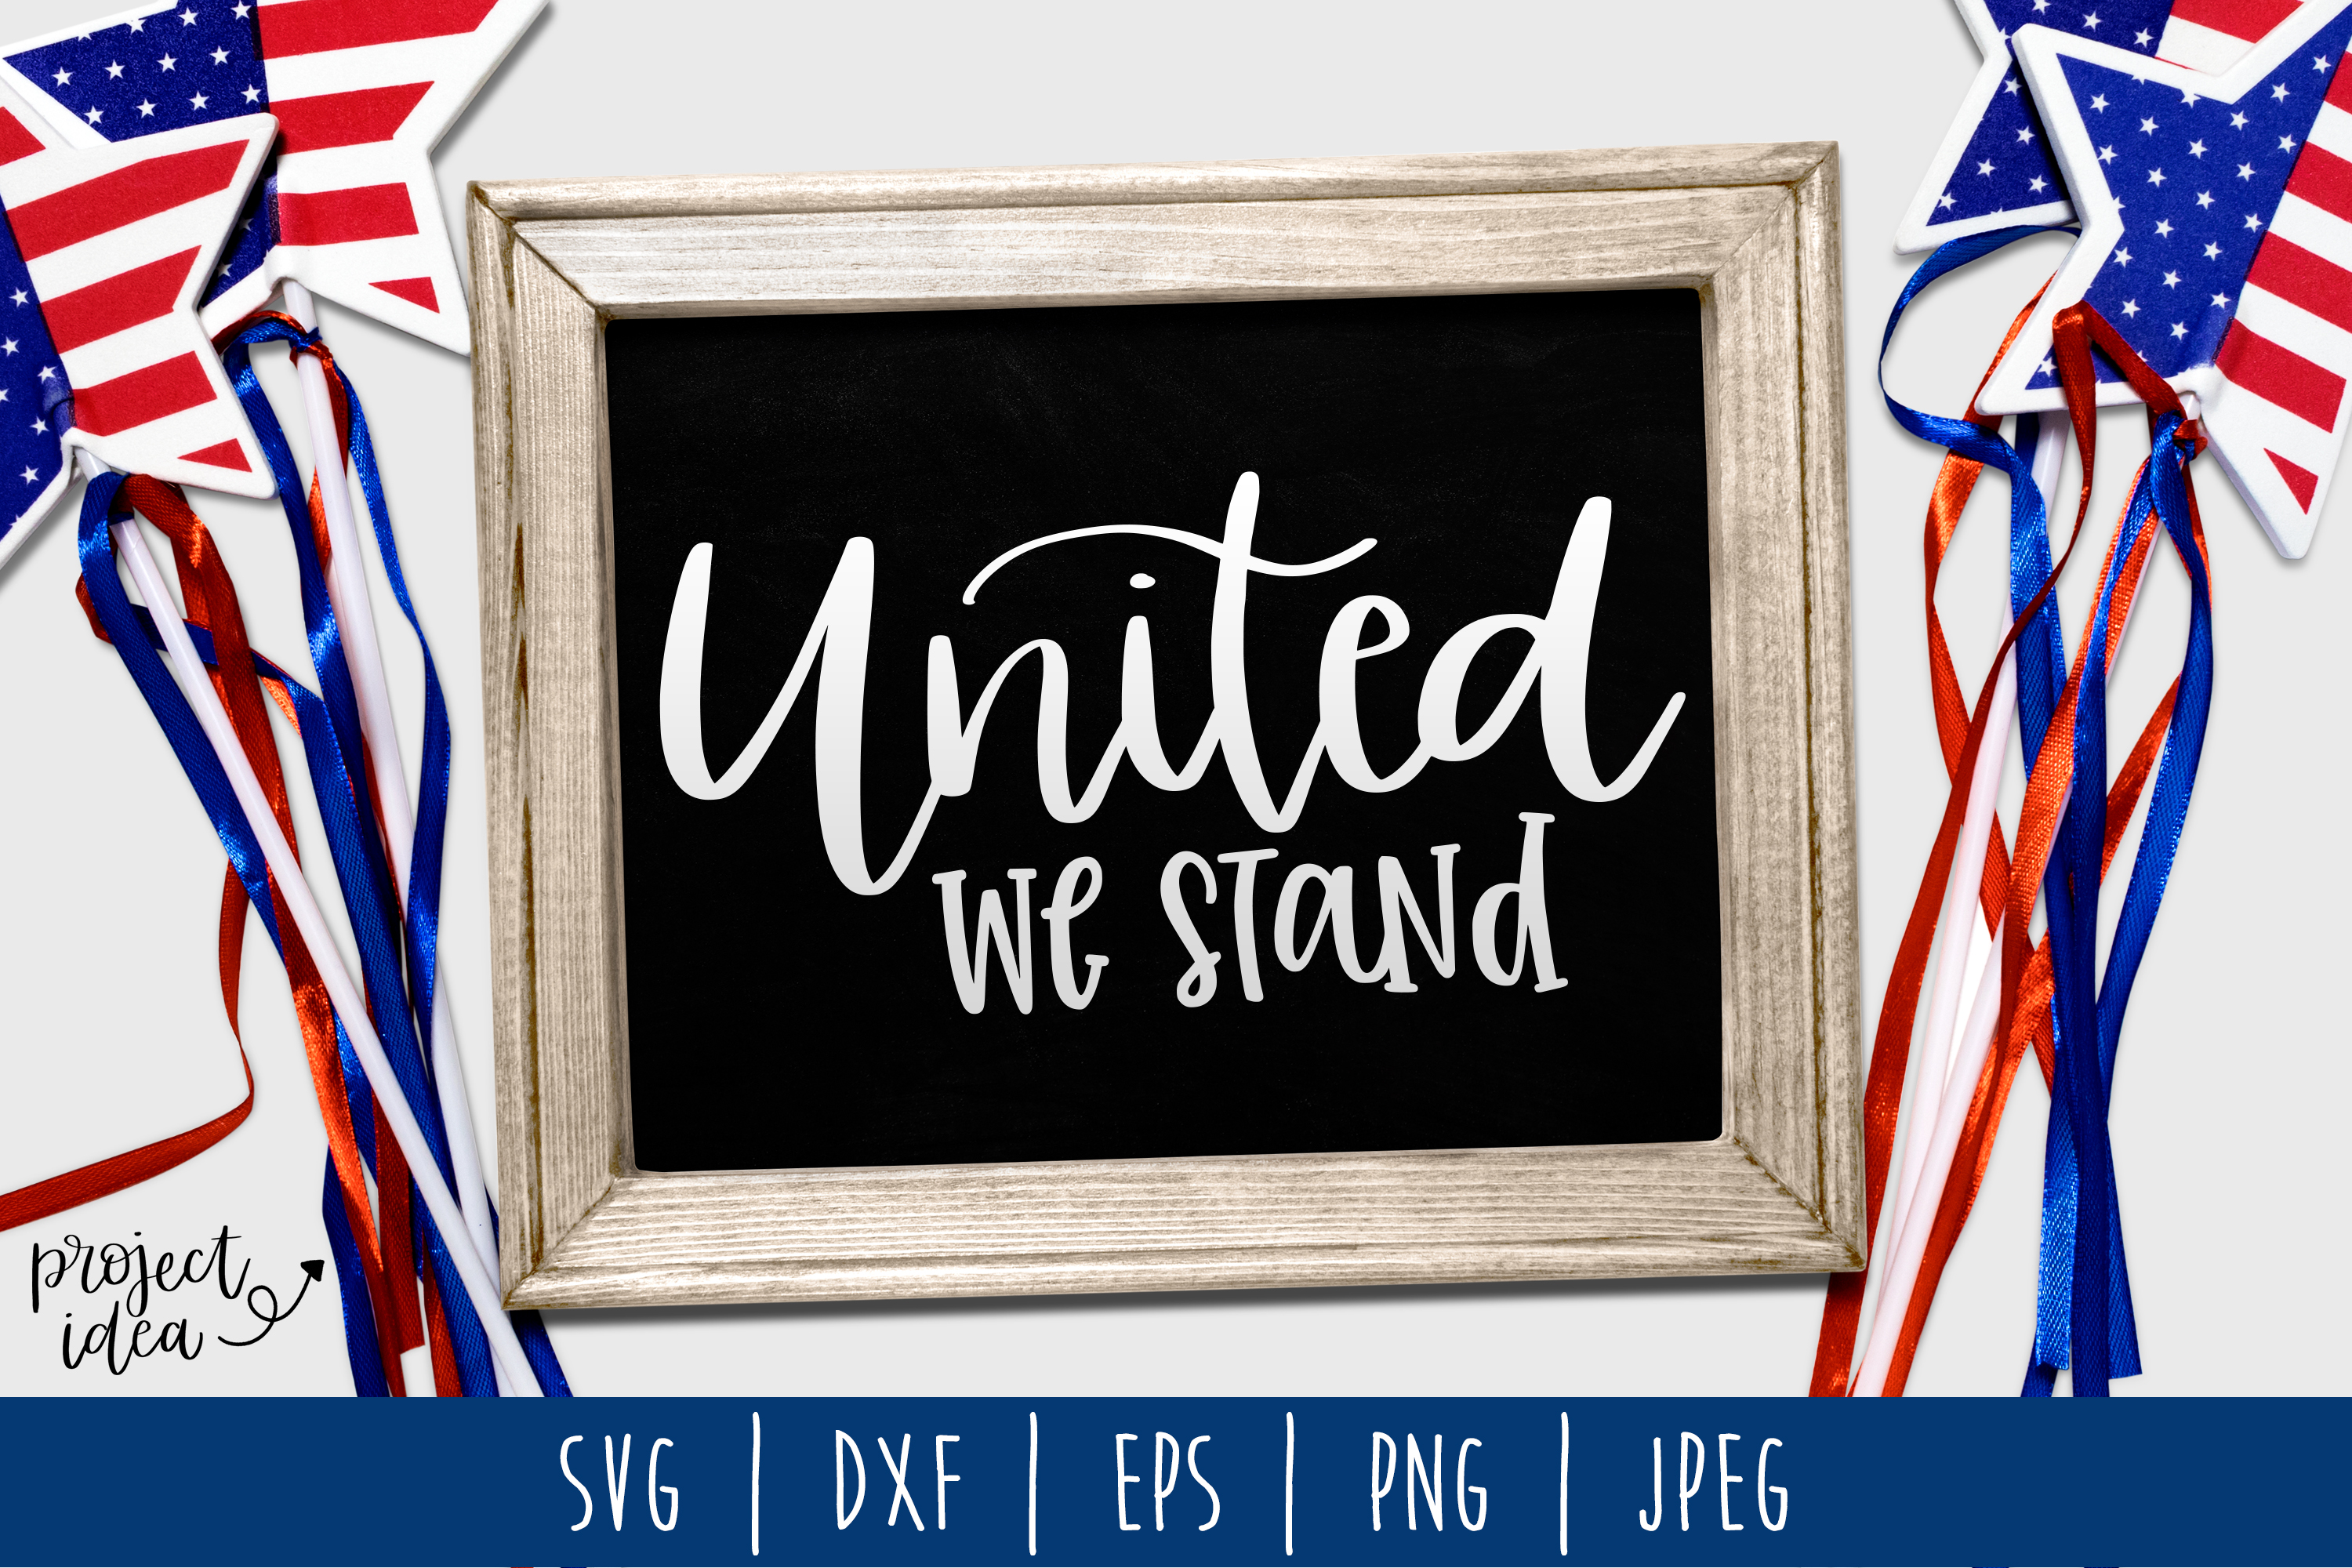 Download Free United We Stand Graphic By Savoringsurprises Creative Fabrica for Cricut Explore, Silhouette and other cutting machines.